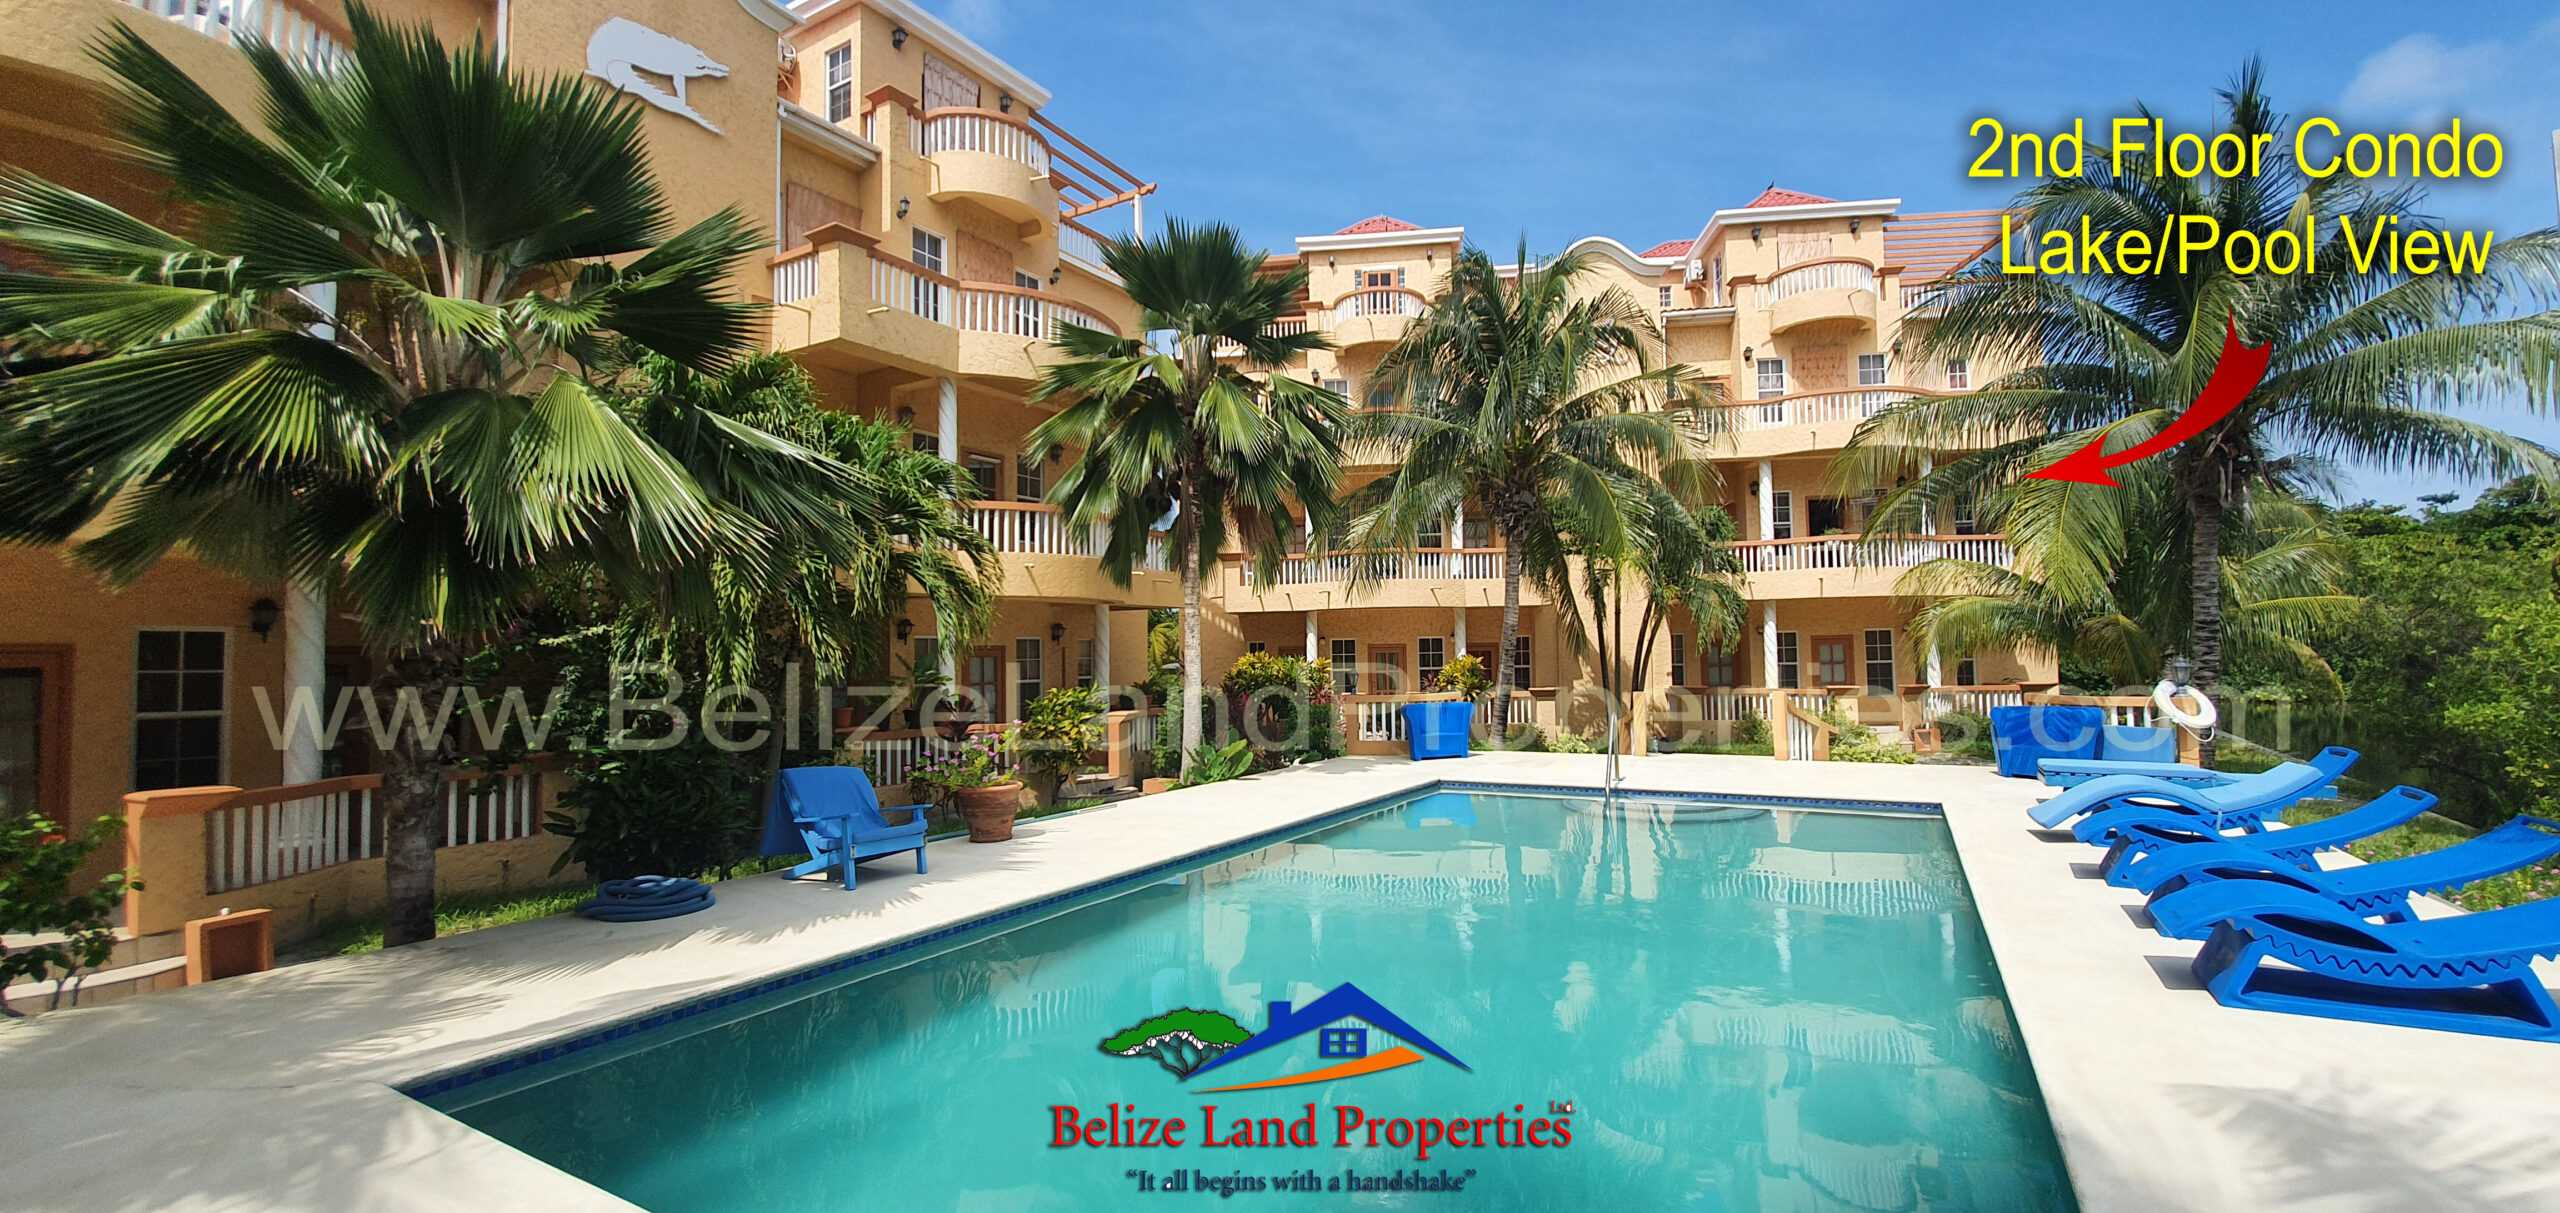 A21: 2 Bedroom Condo with 2 Baths Lake/Pool View at Ambergris Lake Villas, Ambergris Caye! San Pedro Real Estate For Sale! Belize Real Estate in San Pedro Ambergris